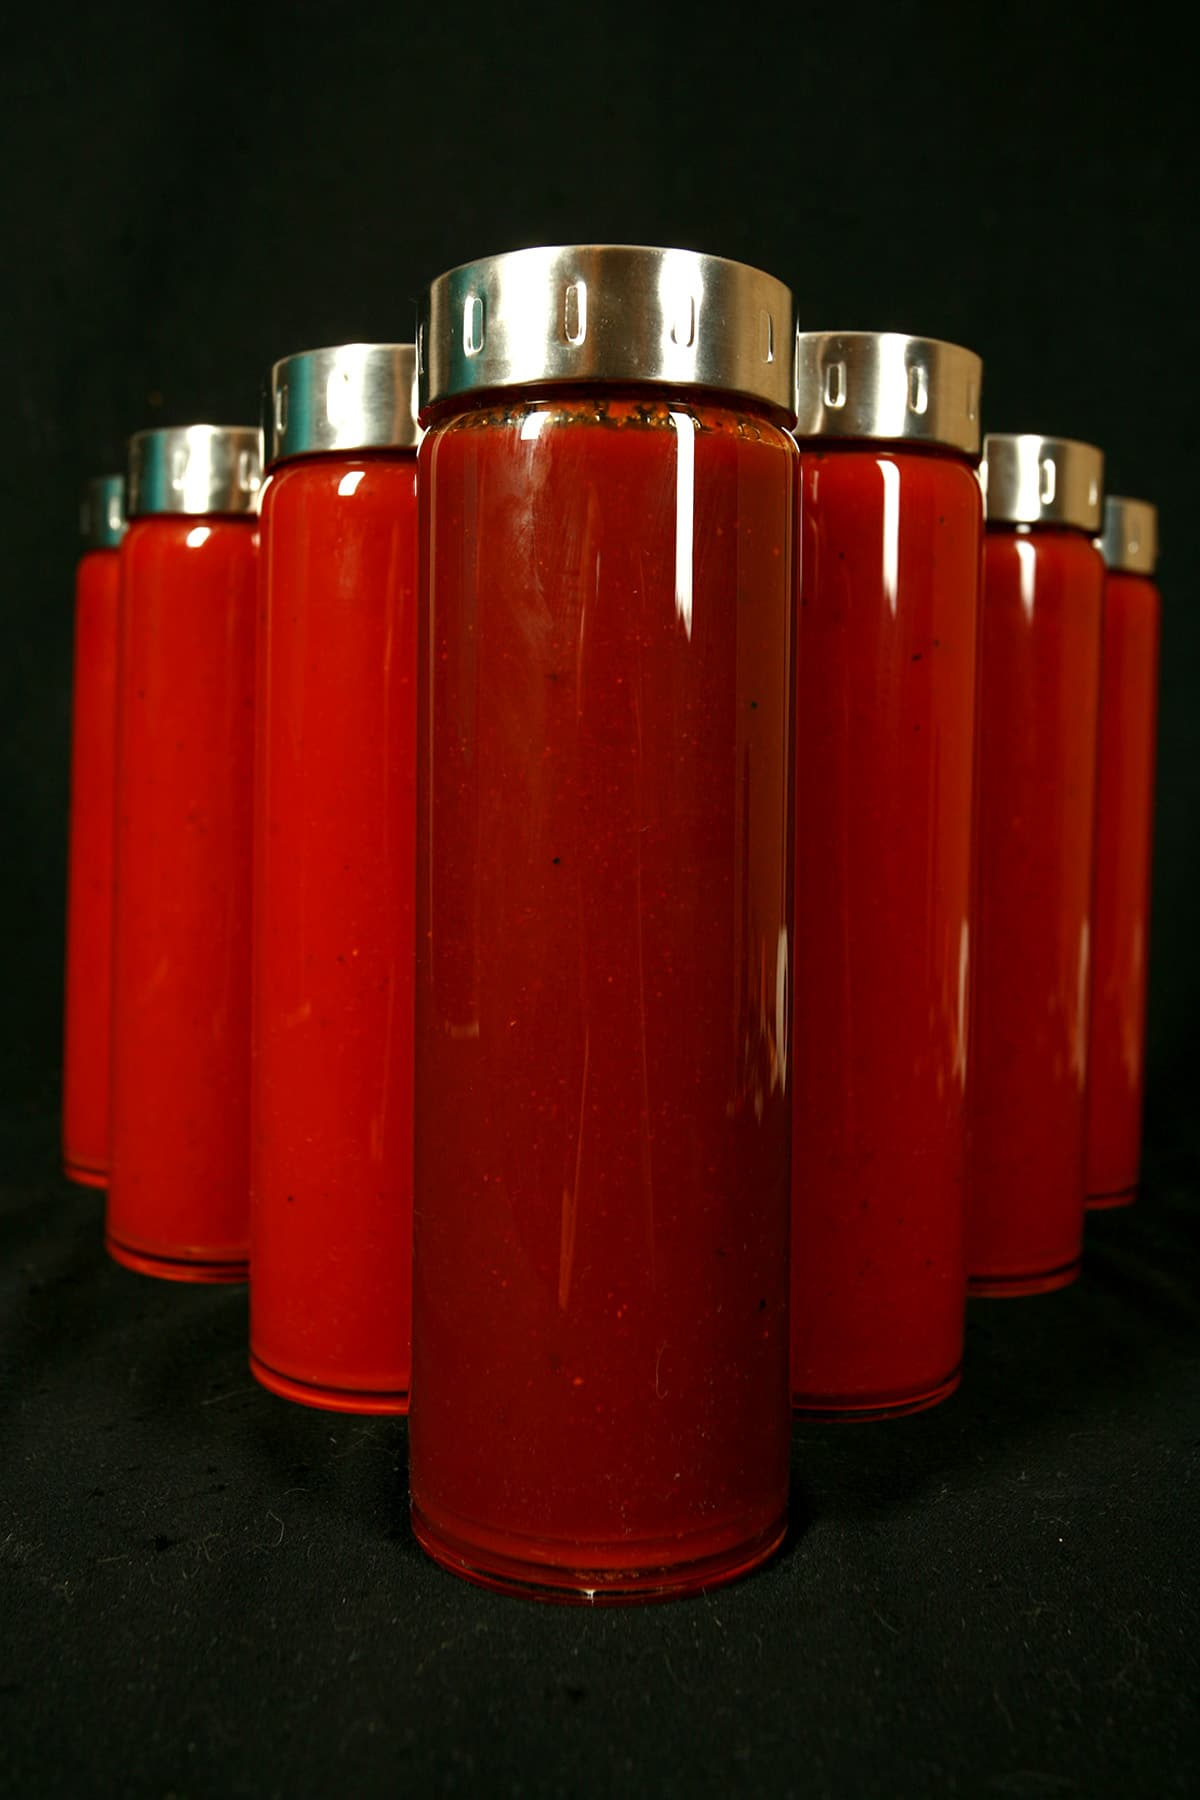 Seven tall, slender glass bottles filled with varying shades of dark red BBQ sauce - Replica Diana BBQ Sauce. The jars all have matching stainless lids, and are arranged in a V formation.